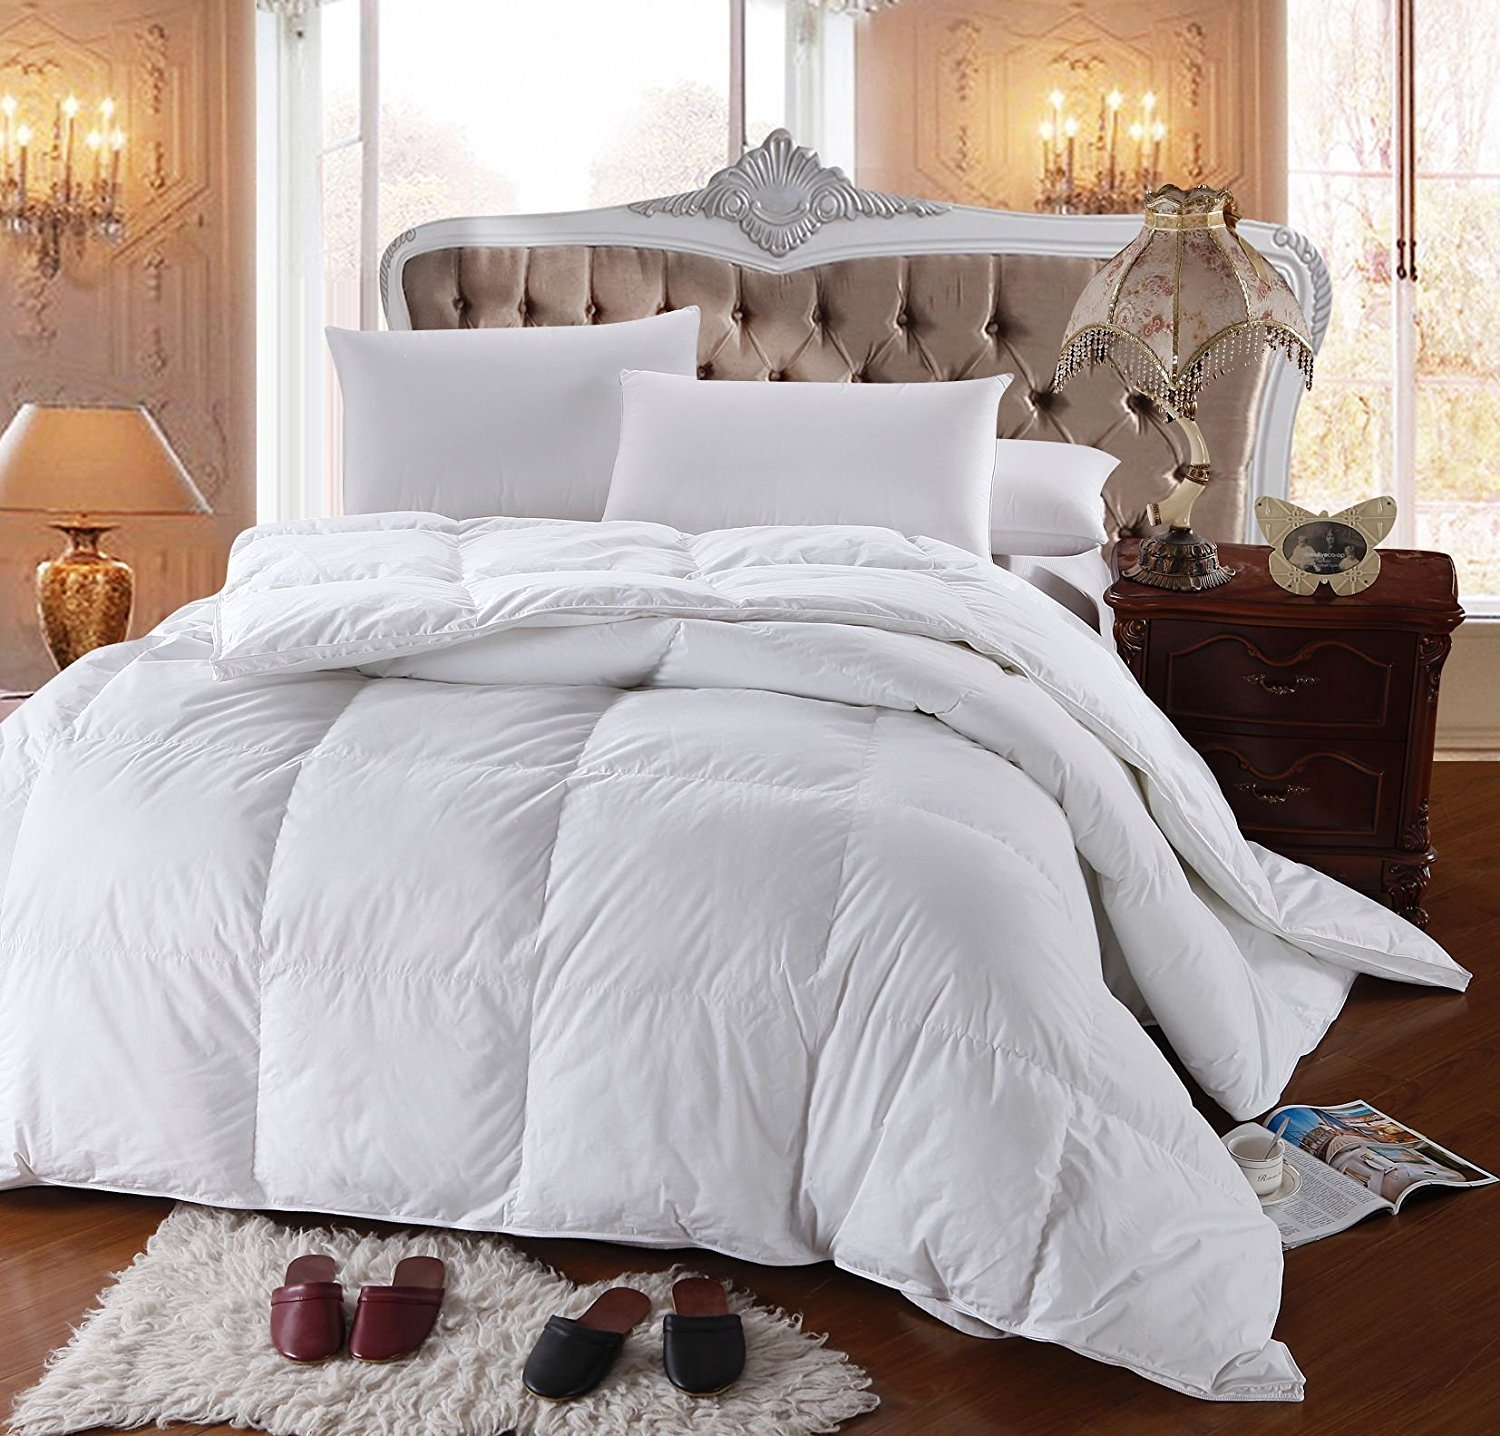 Royal Hotel's 300 Thread Count King Size Comforter